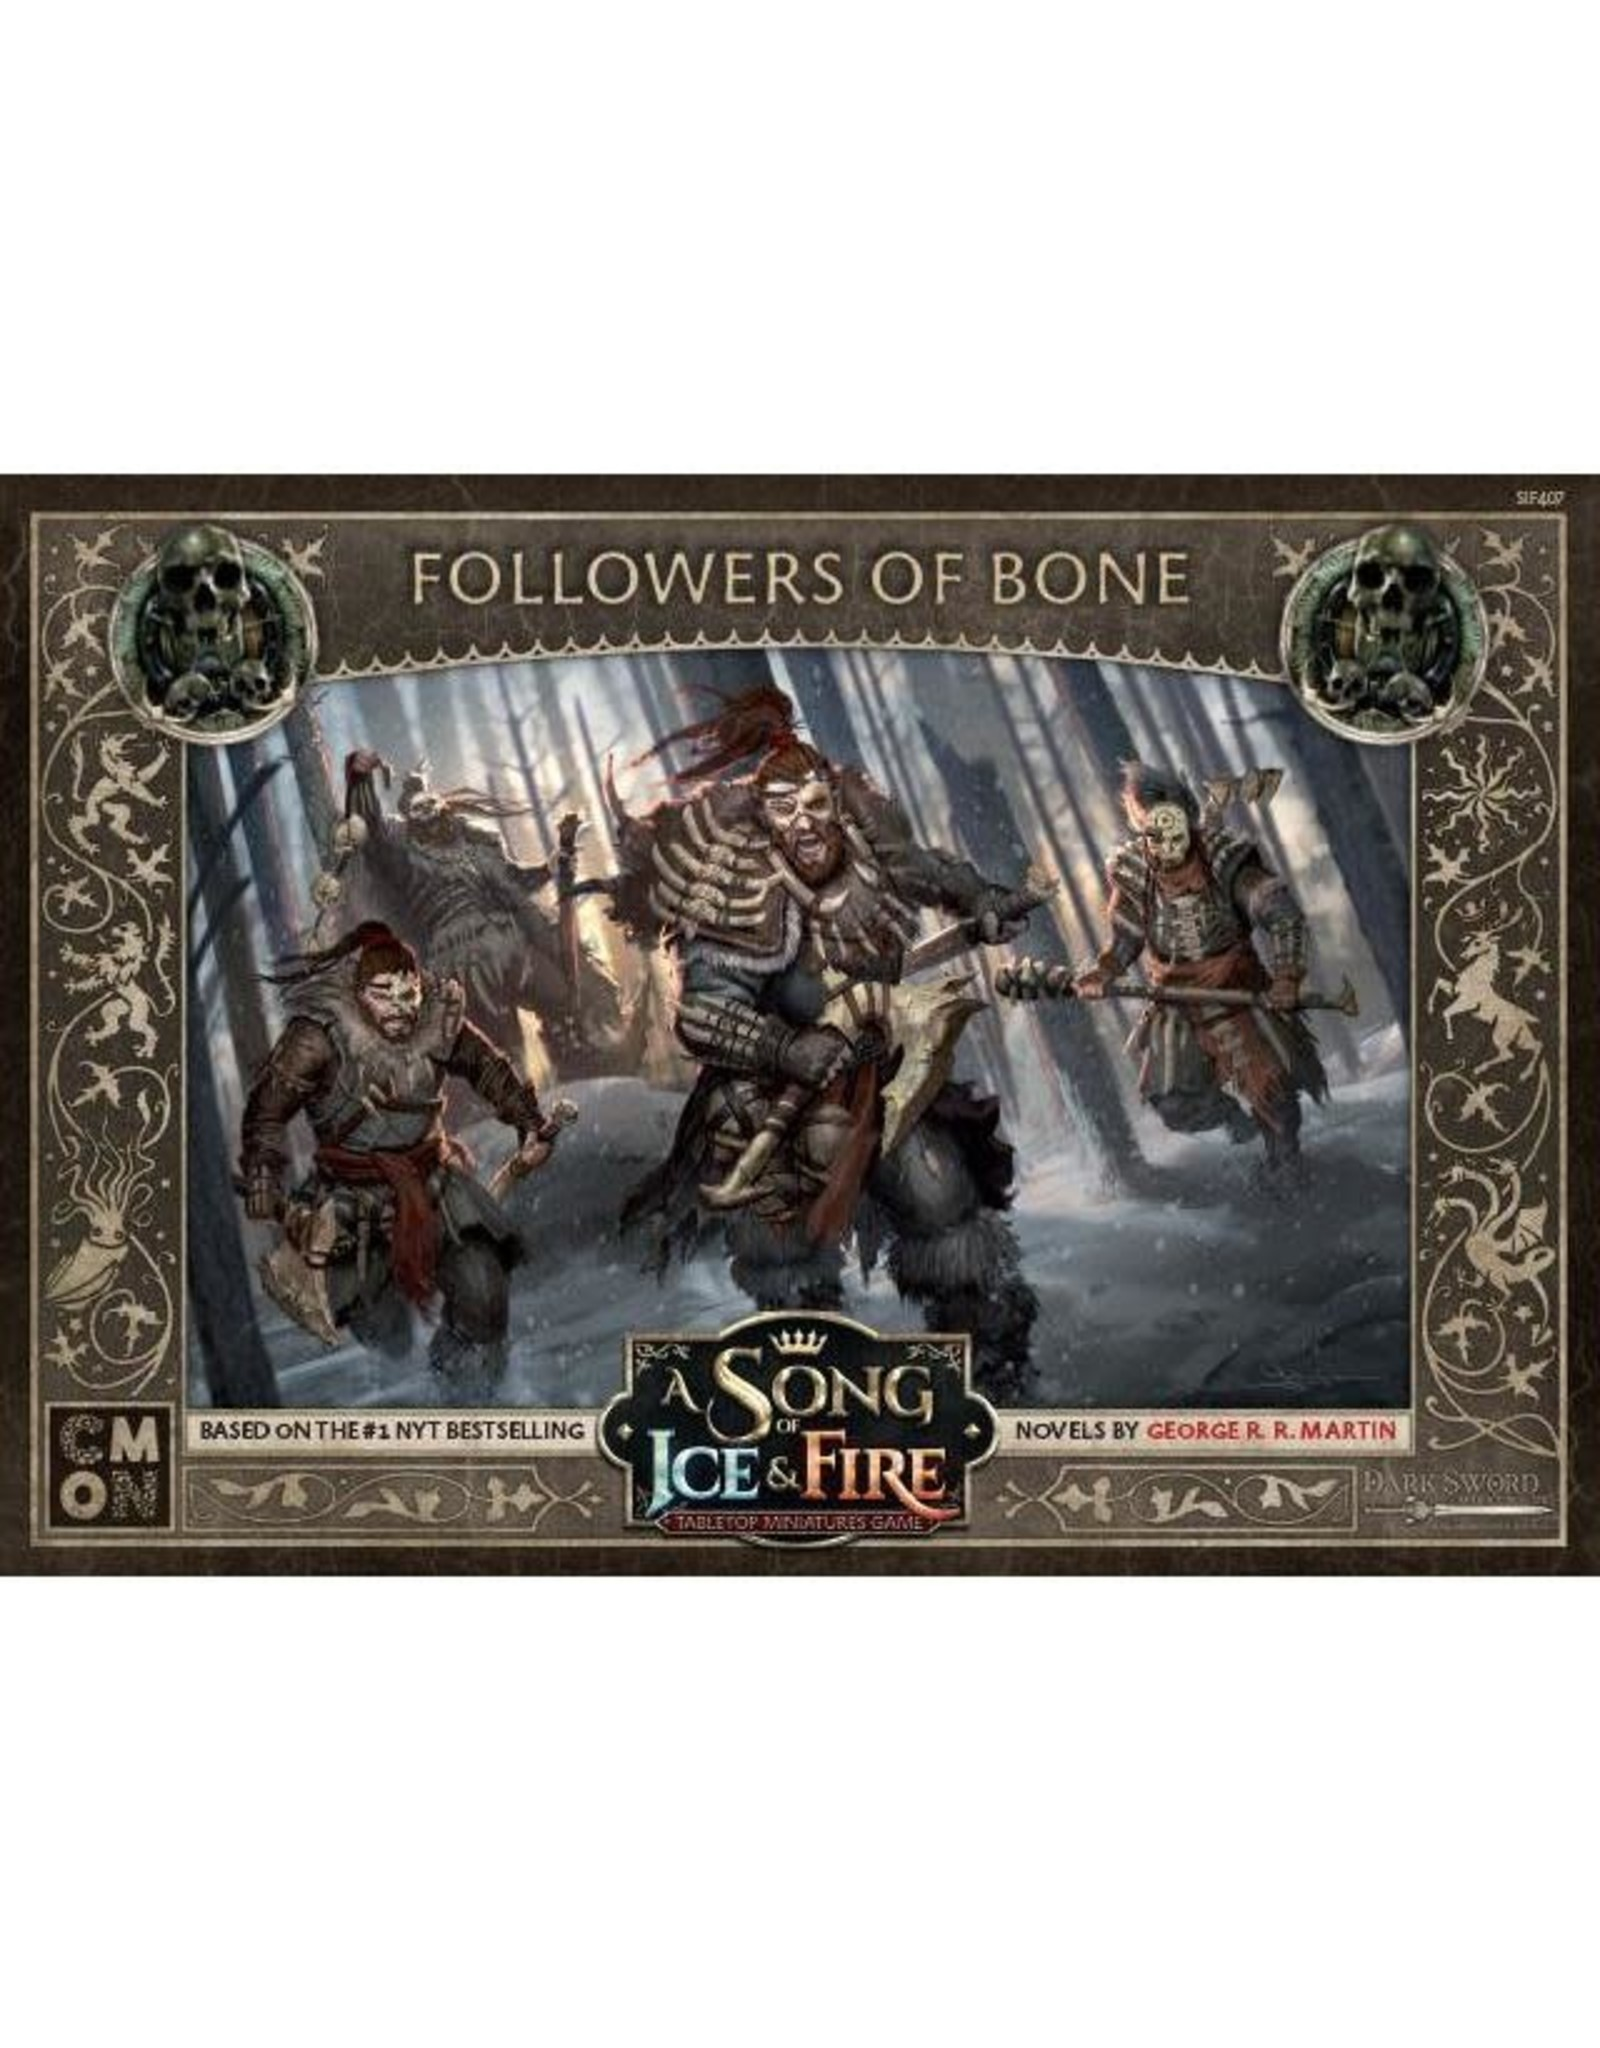 CMON A SONG OF ICE & FIRE: FREE FOLK FOLLOWERS BONE